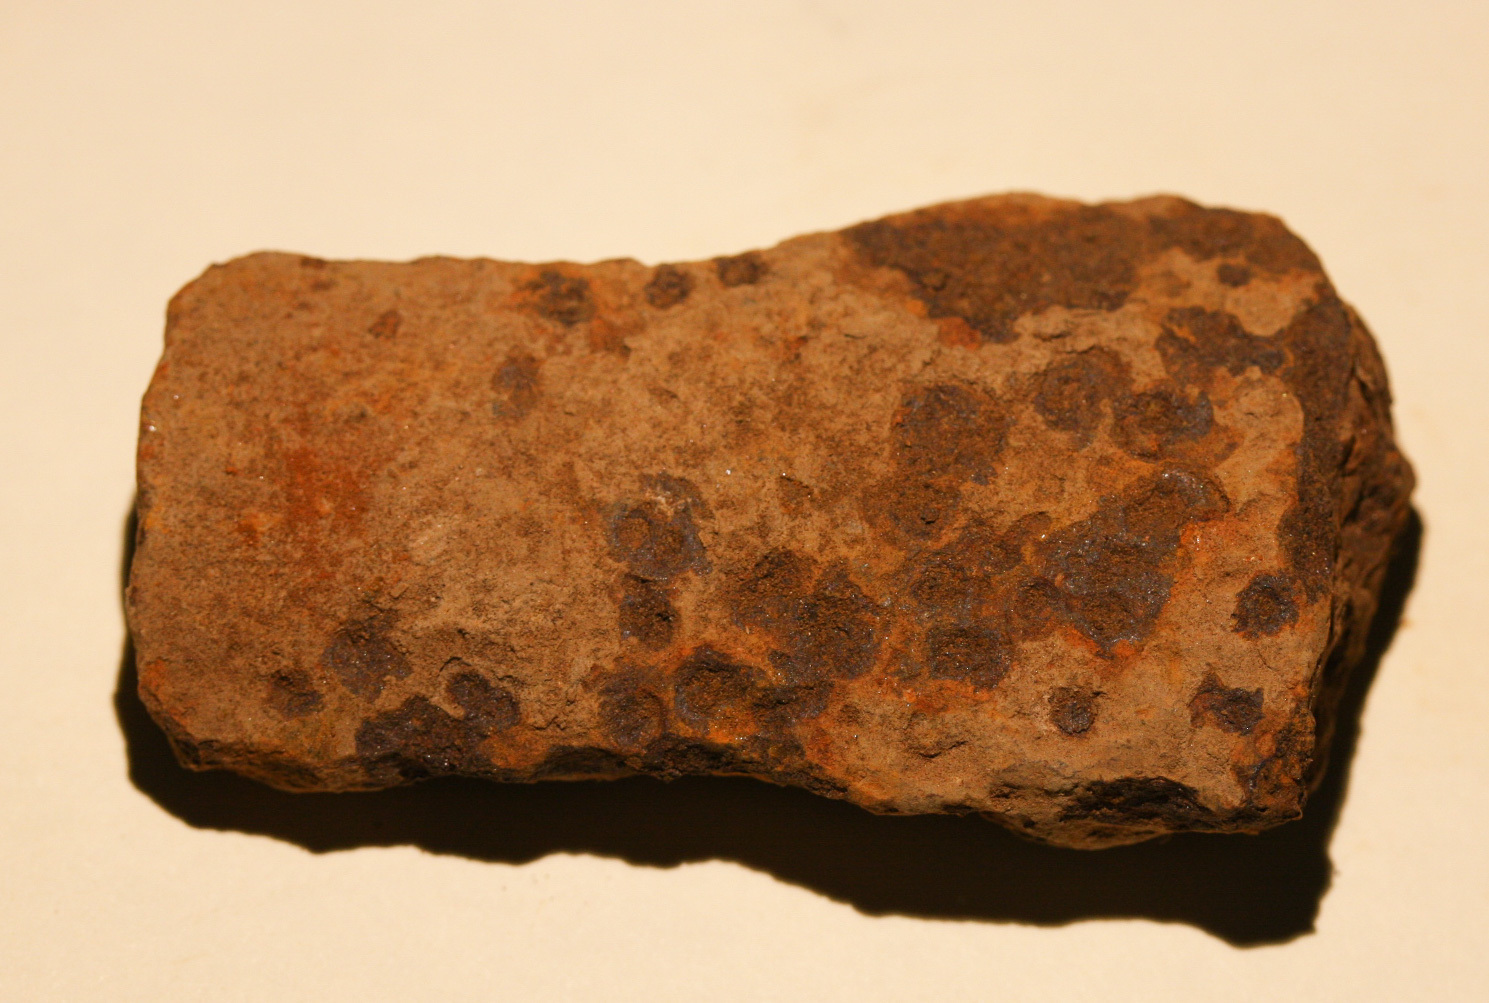 JUST ADDED ON 3/9 - GETTYSBURG - HETH'S DIVISION / HERR'S RIDGE - ROSENSTEEL FAMILY - Fragment of an Artillery Shell GR-IRHRH15